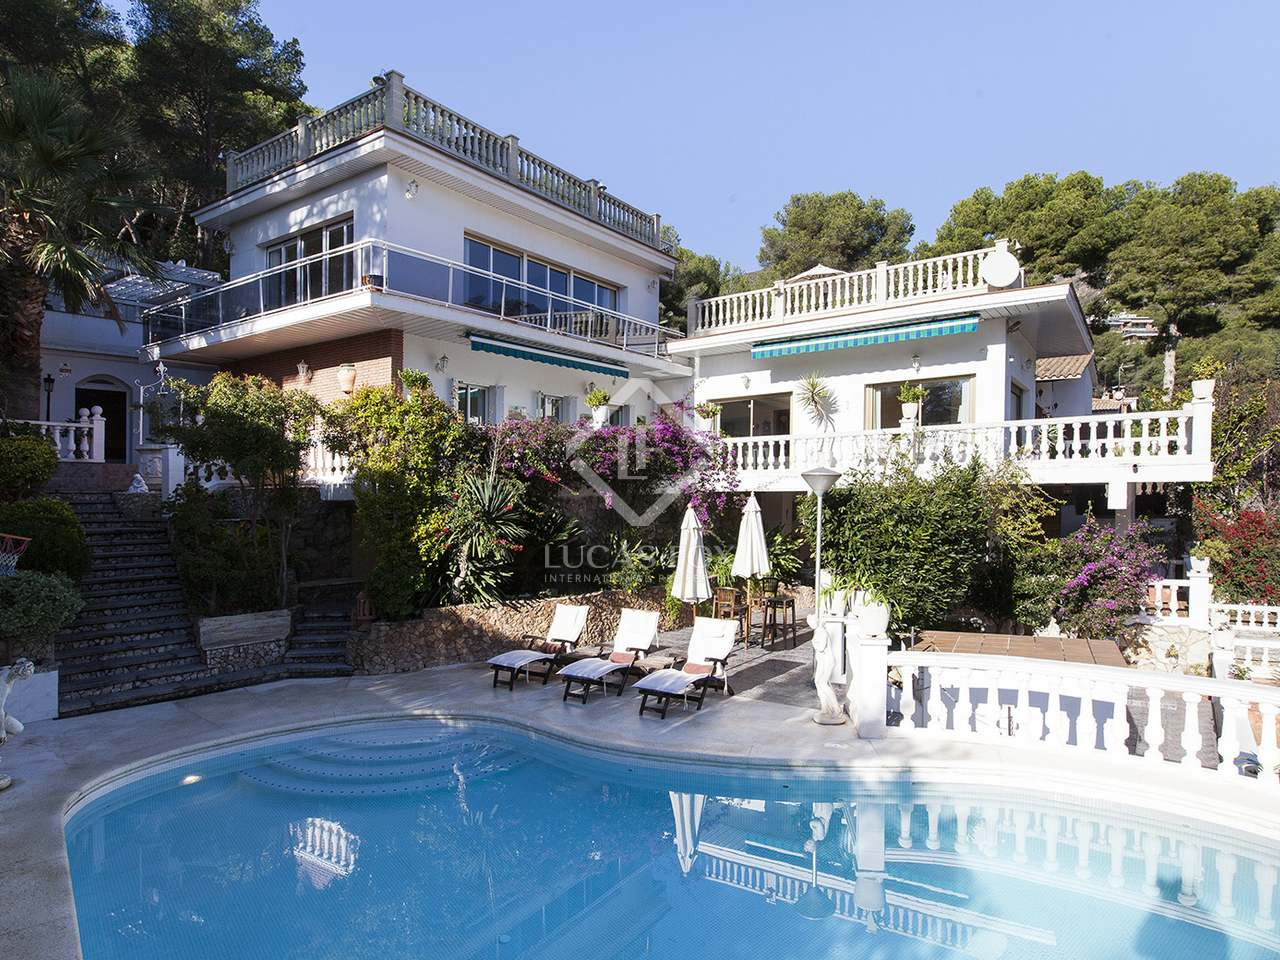 5 Bedroom Villa With A Pool To Buy In Bellamar Castelldefels